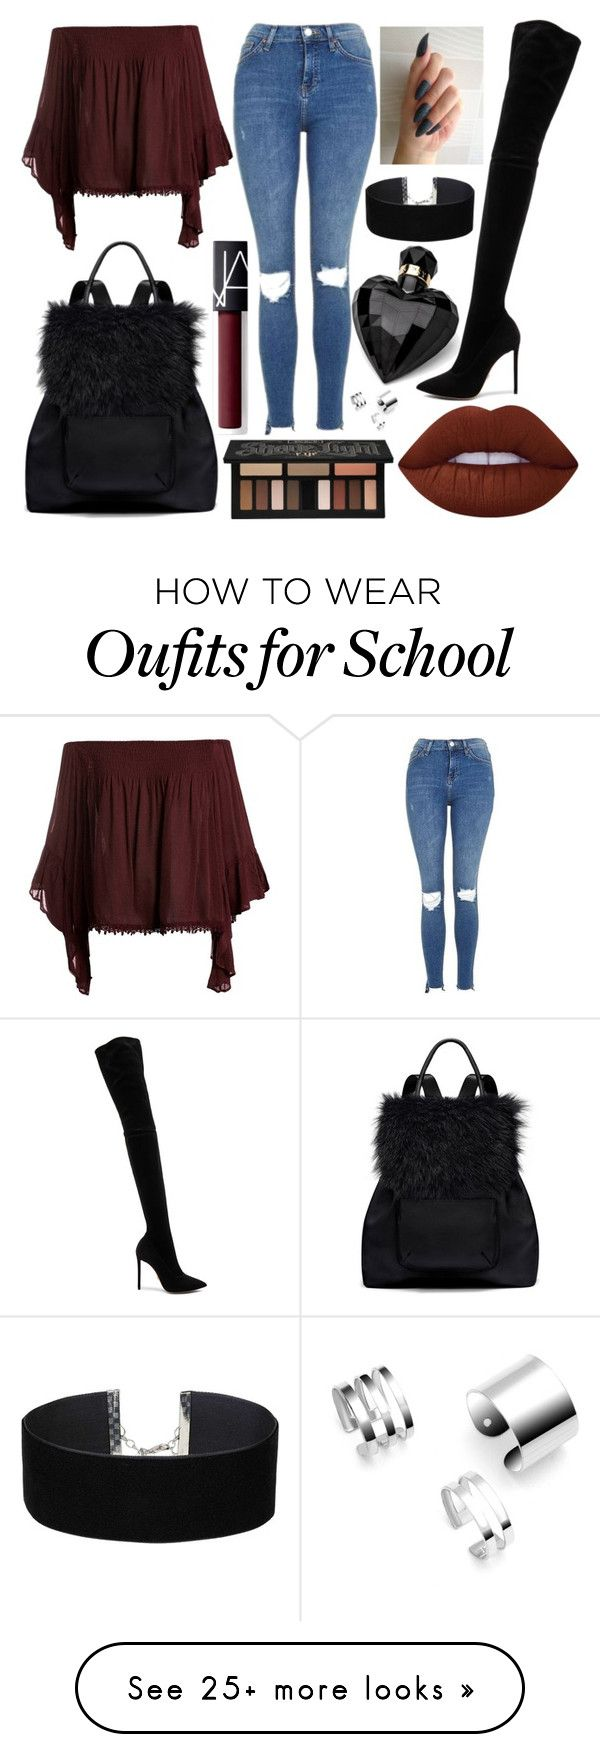 """School Day"" by susanna-trad on Polyvore featuring Lipsy, Sans Souci, Topshop, Oscar Tiye, Elizabeth and James, Lime Crime, NARS Cosmetics, Kat Von D and Miss Selfridge"